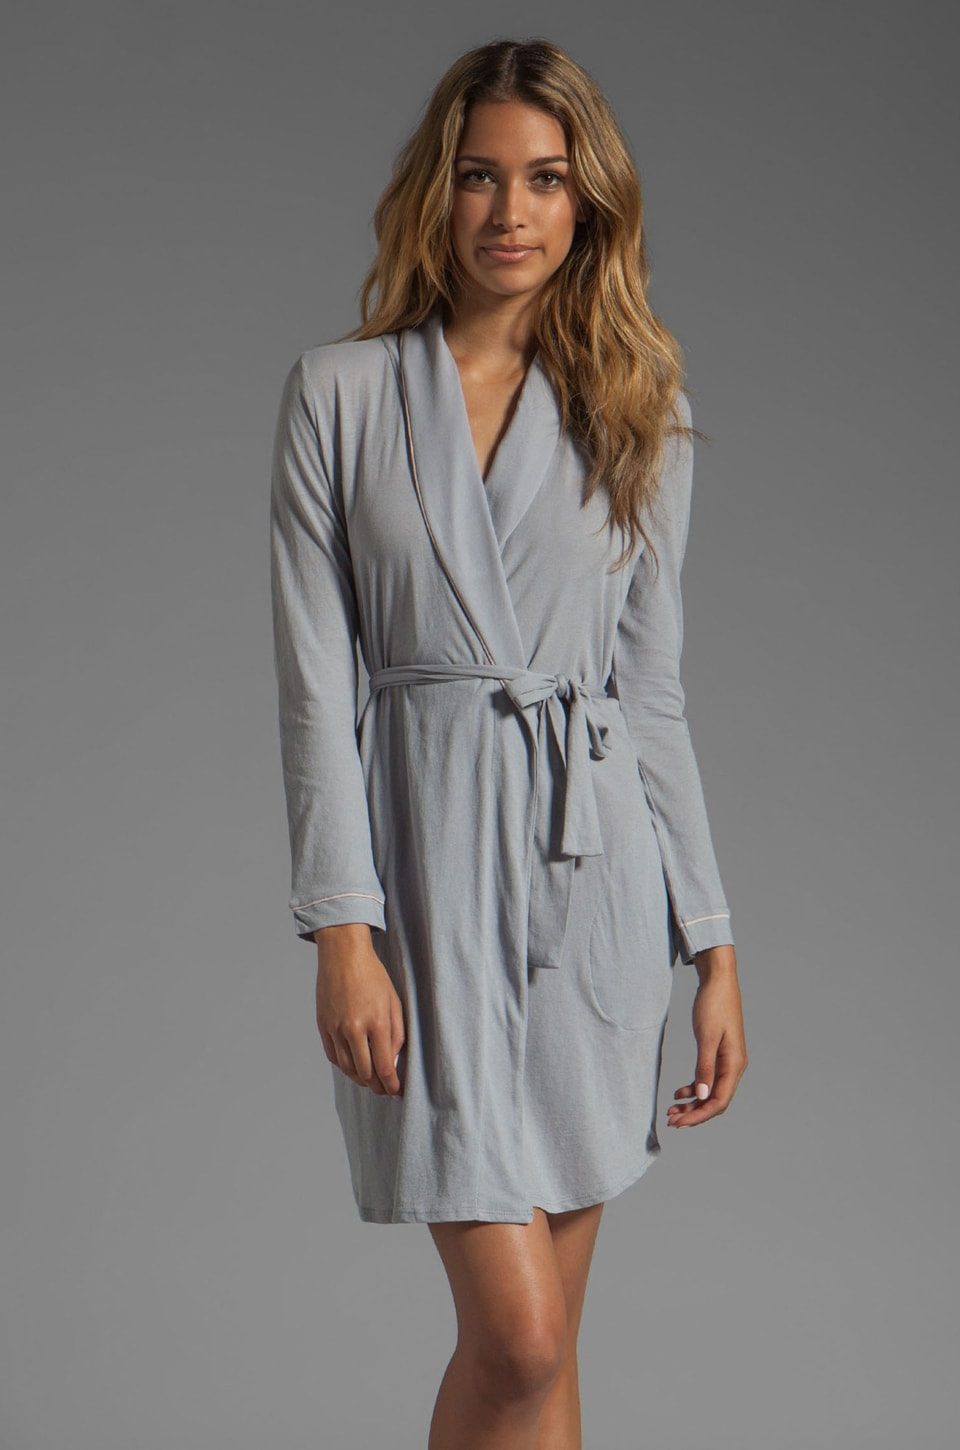 Only Hearts Organic Cotton Piped Short Robe in Pebble/Bone